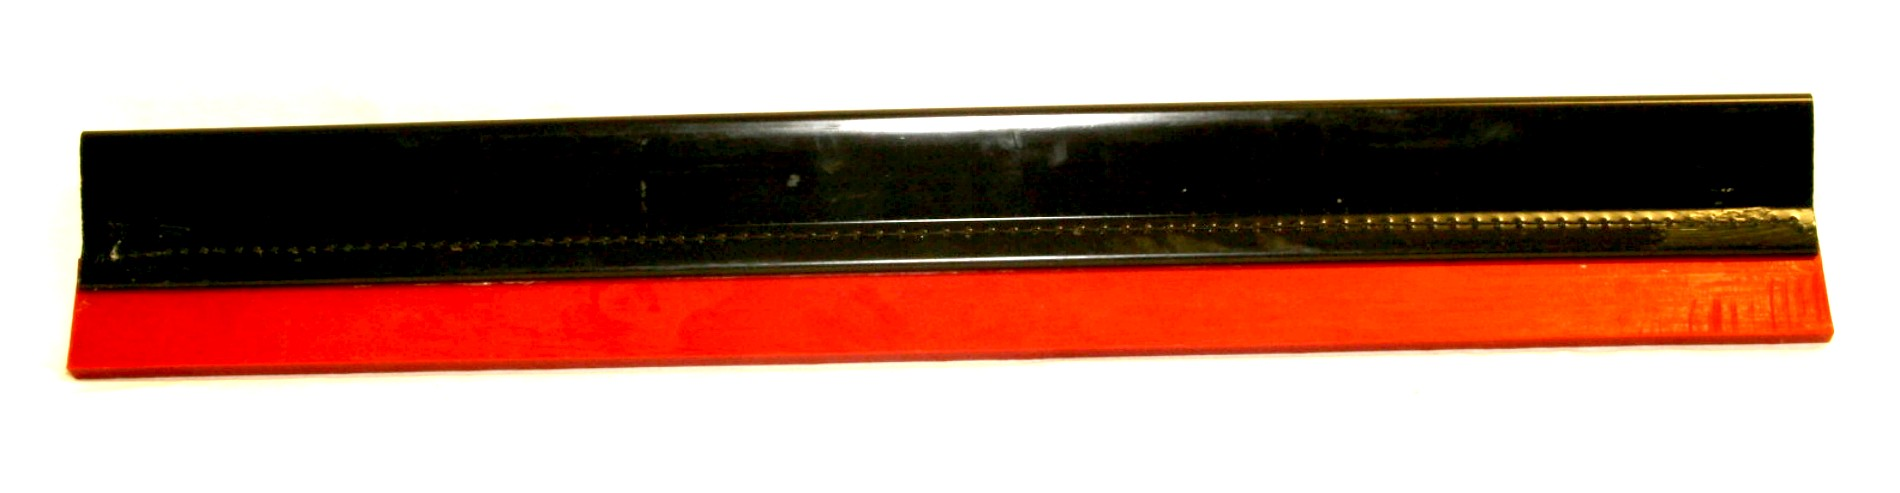 Aftermarket Tennant 86859 Side Squeegee